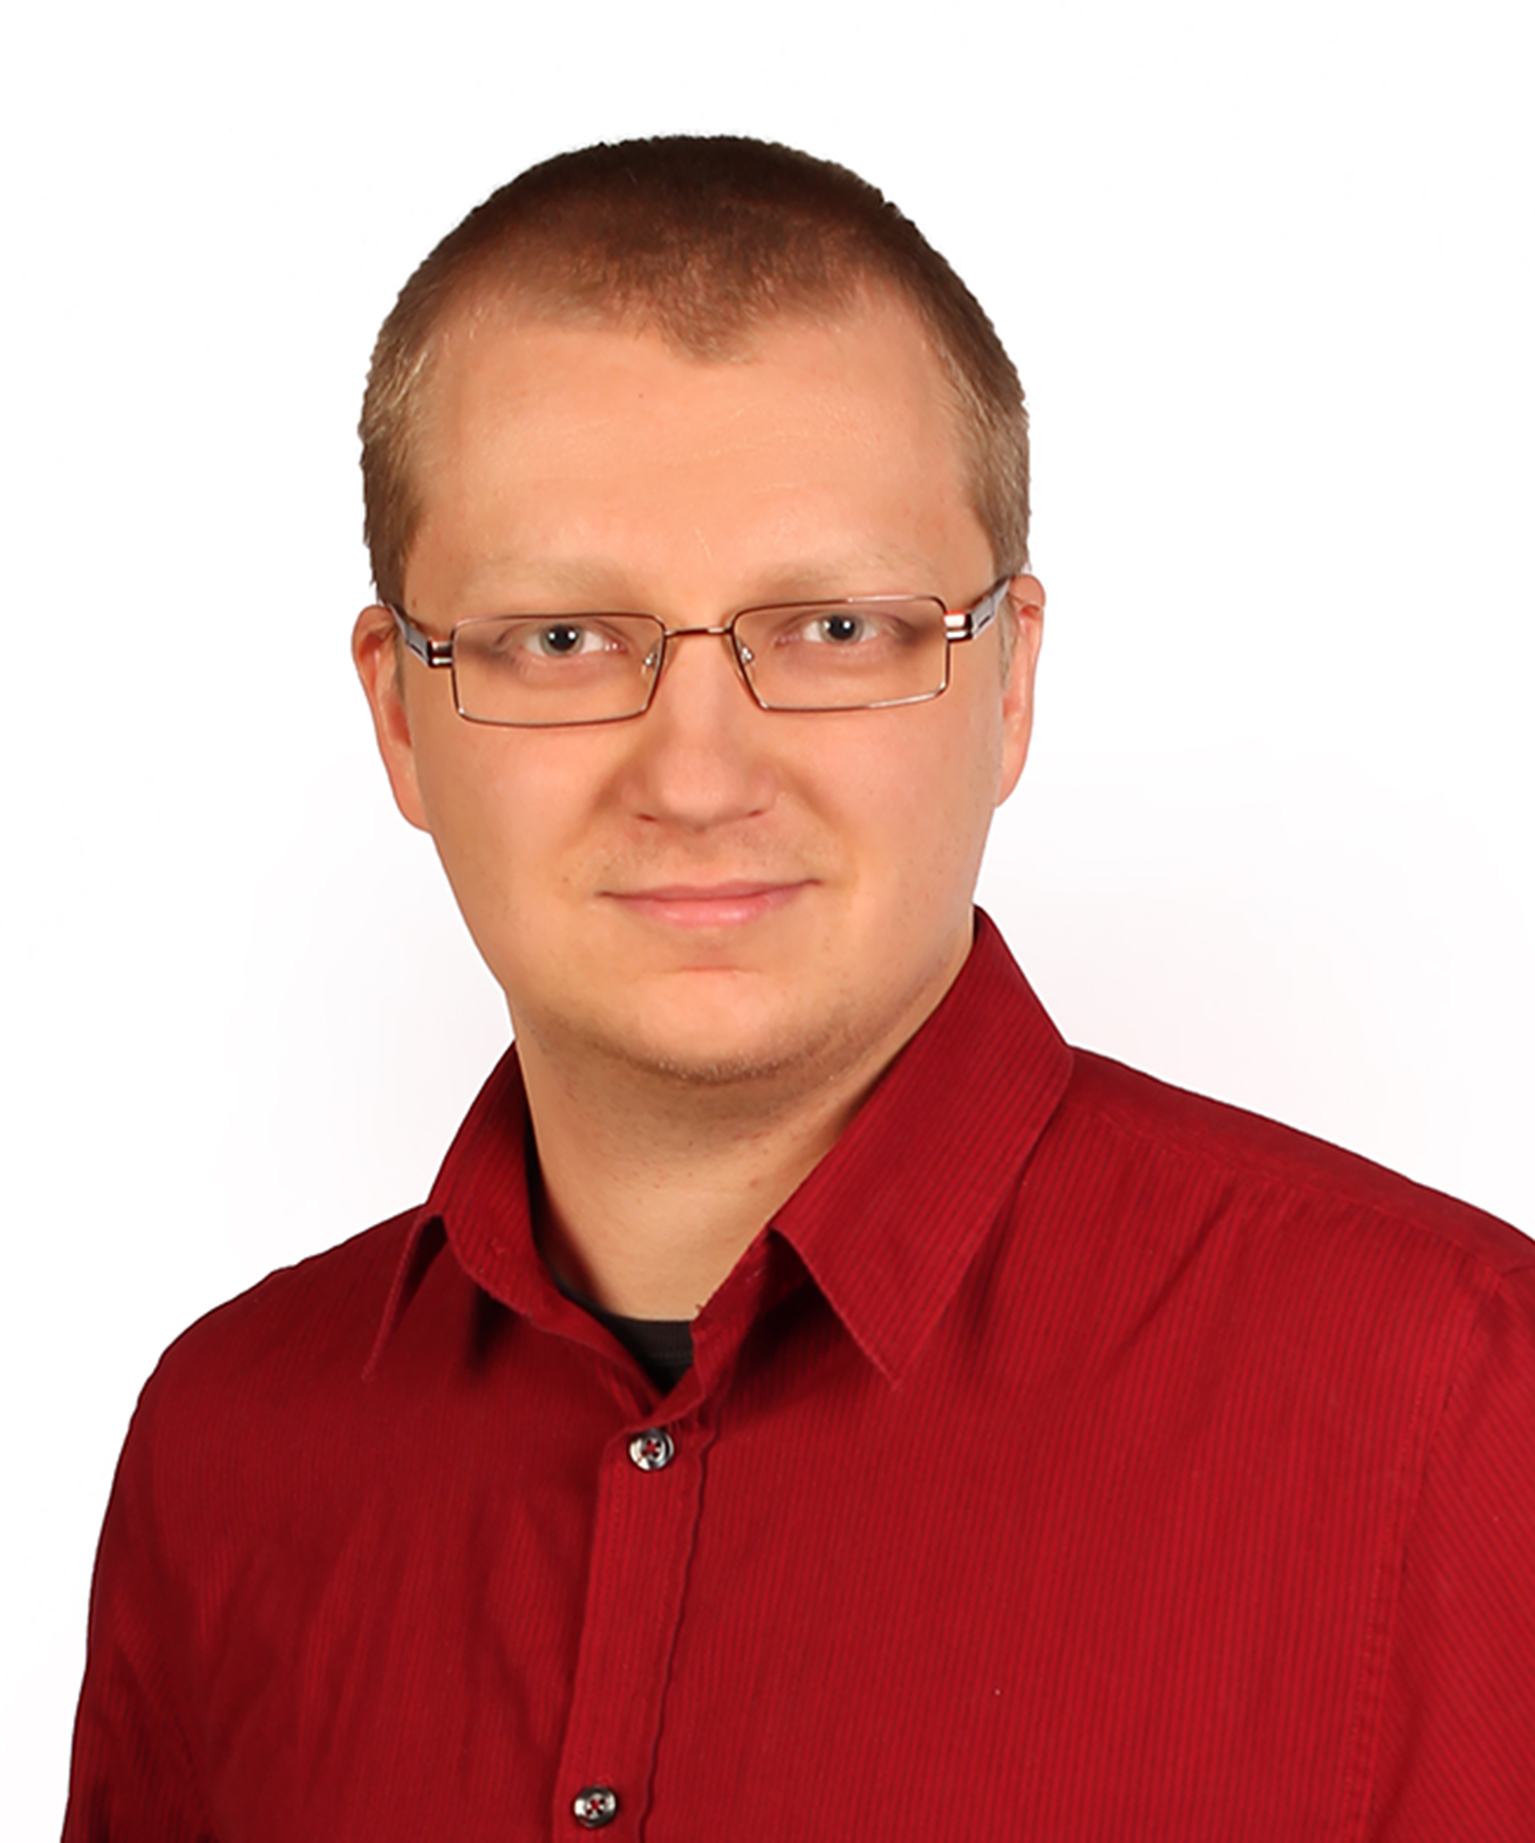 Piotr - Front-end Developer